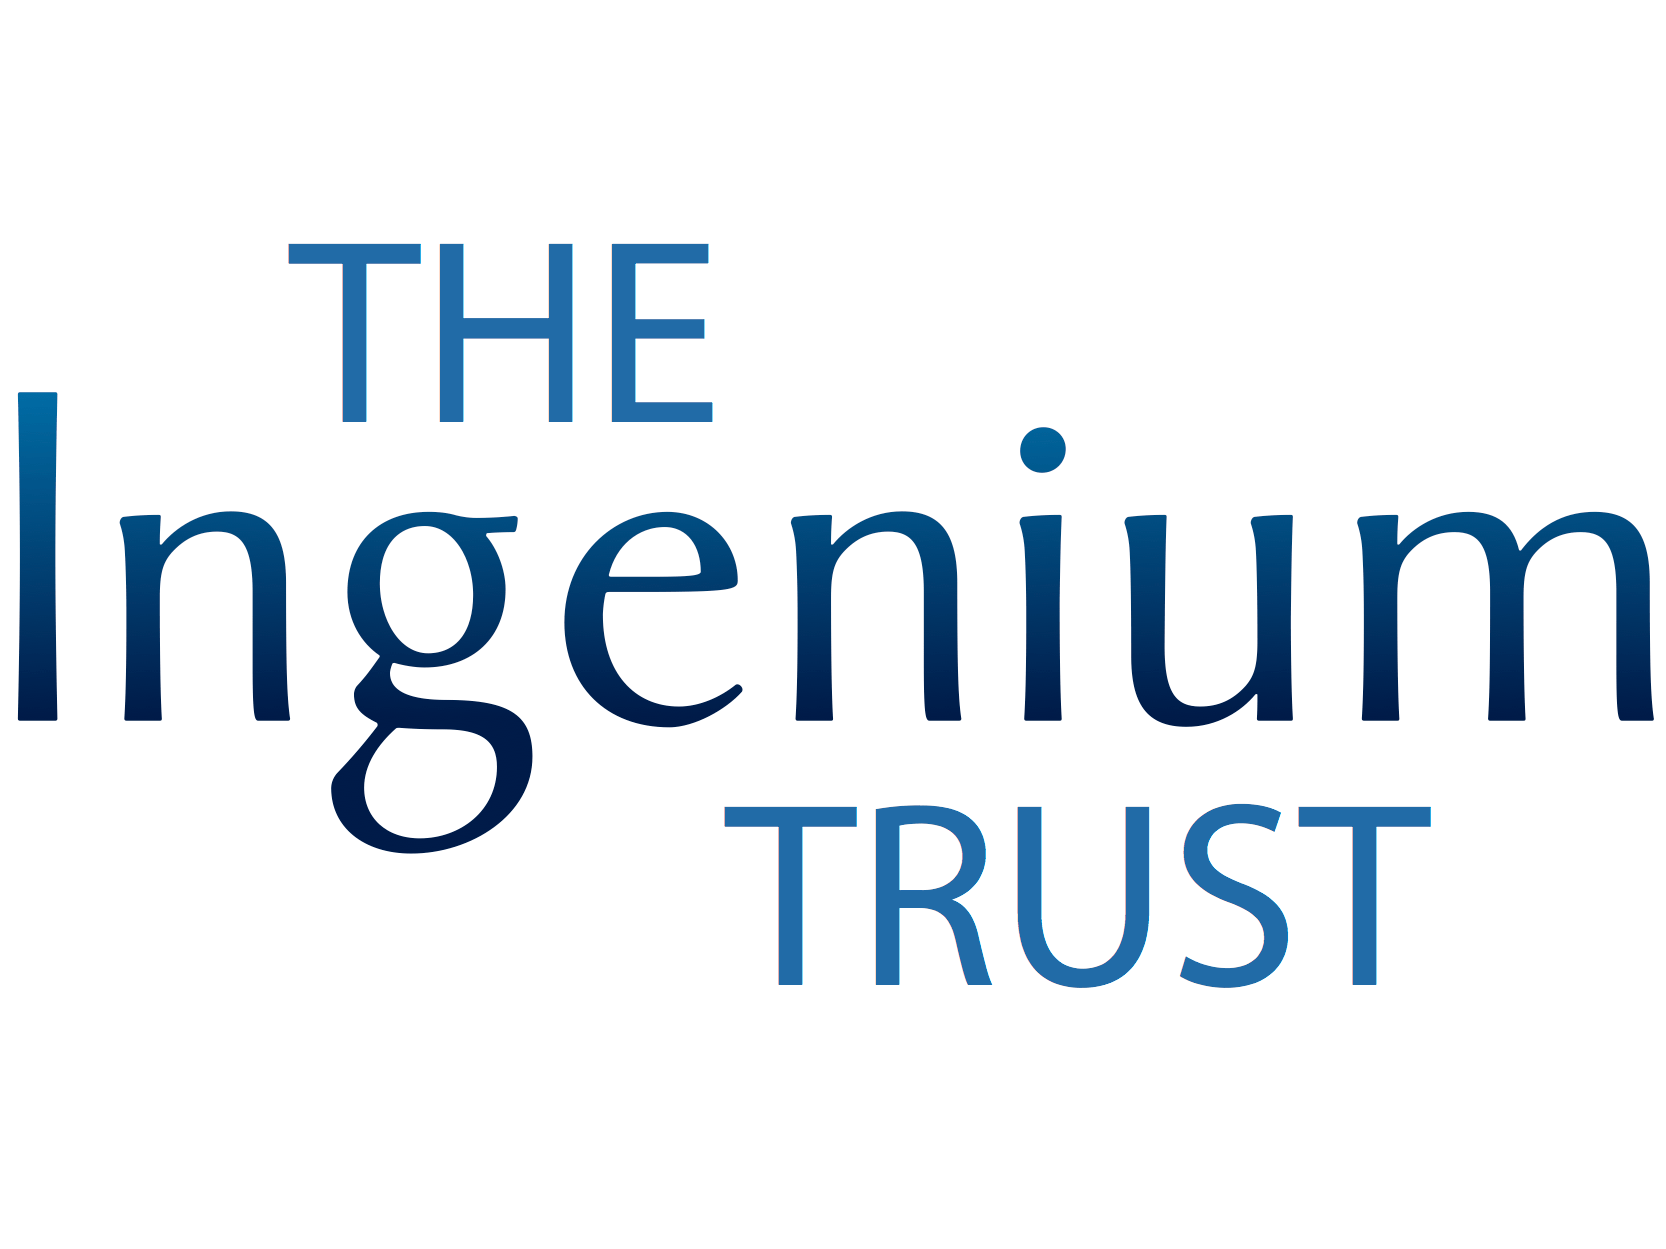 The Ingenium Trust music charity